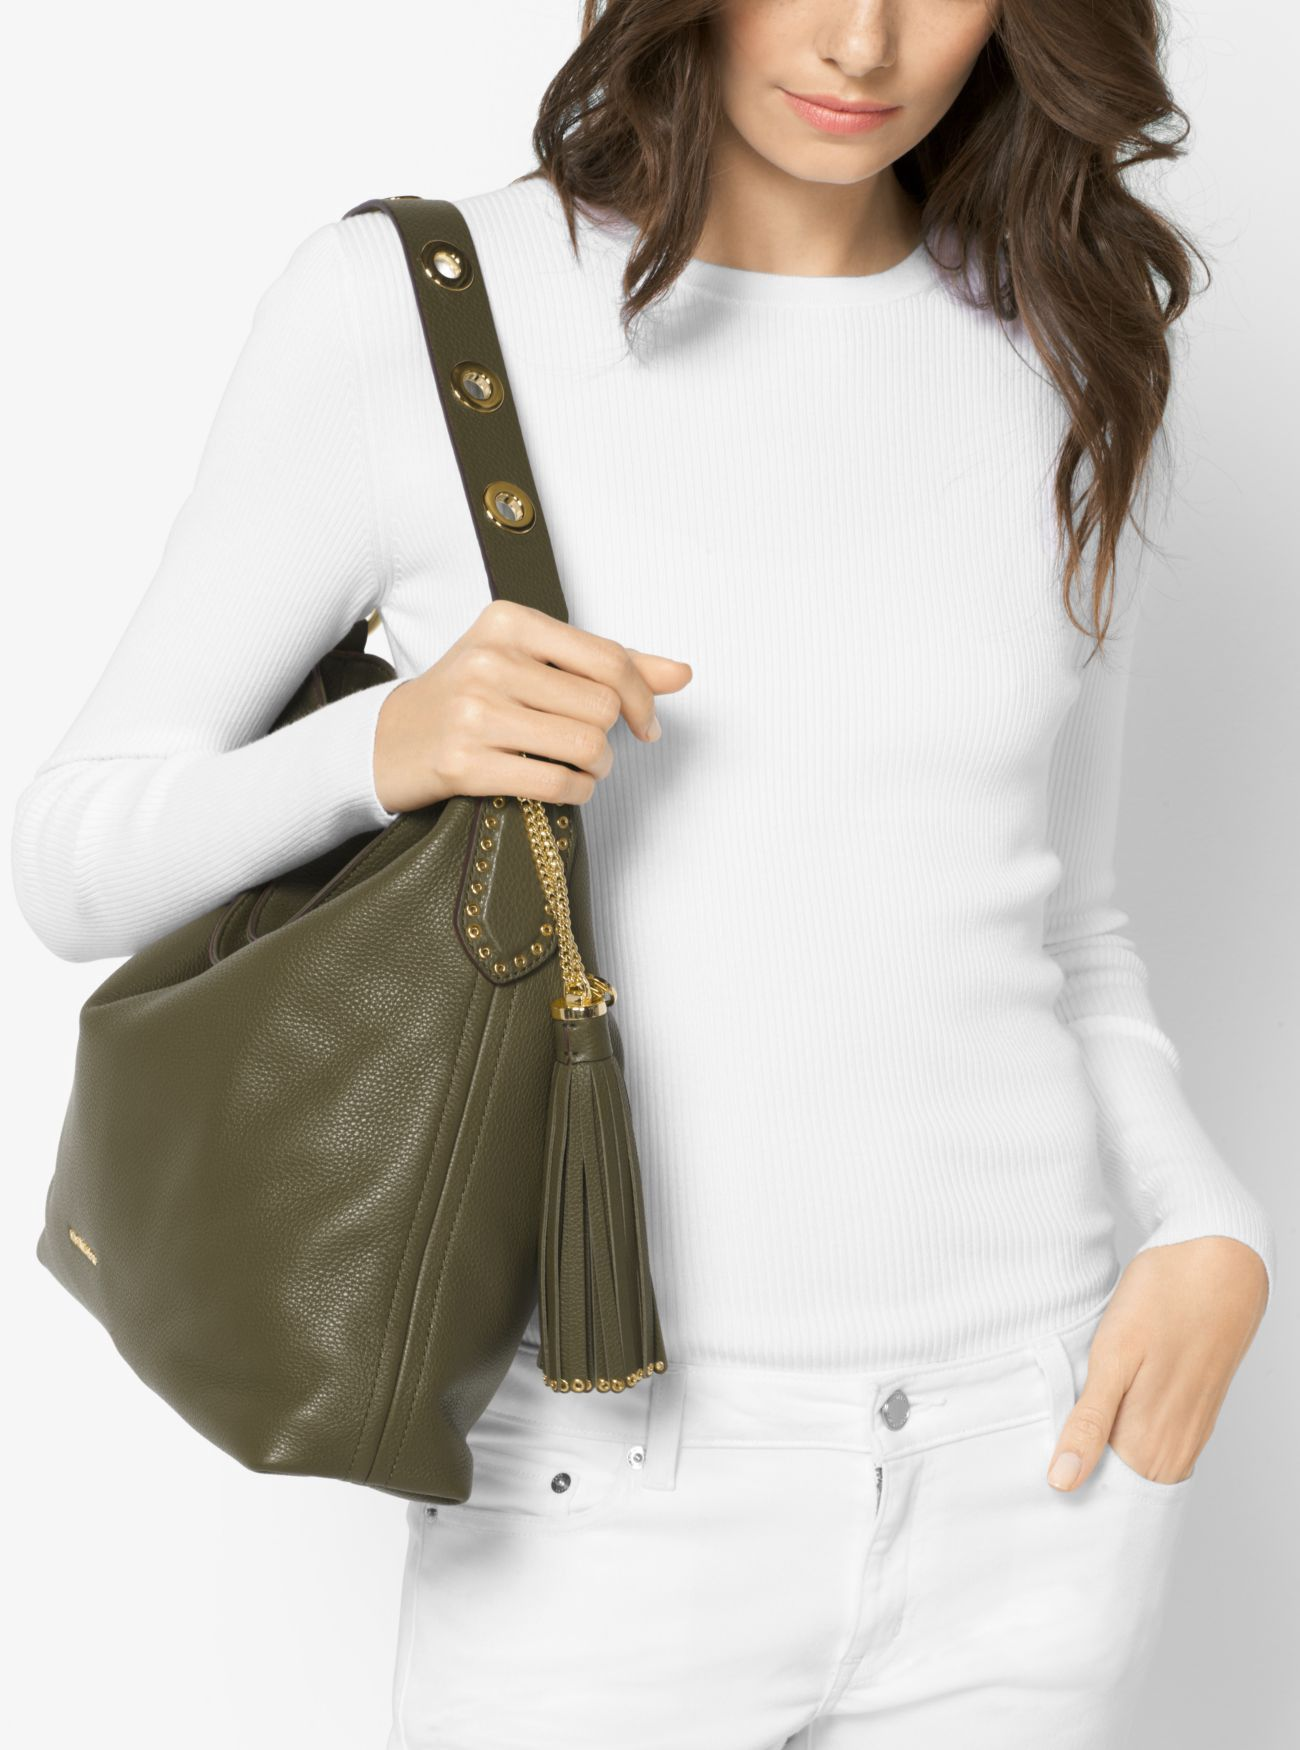 43d6d4daad34 Brooklyn Large Leather Shoulder Bag by Michael Kors | Products ...